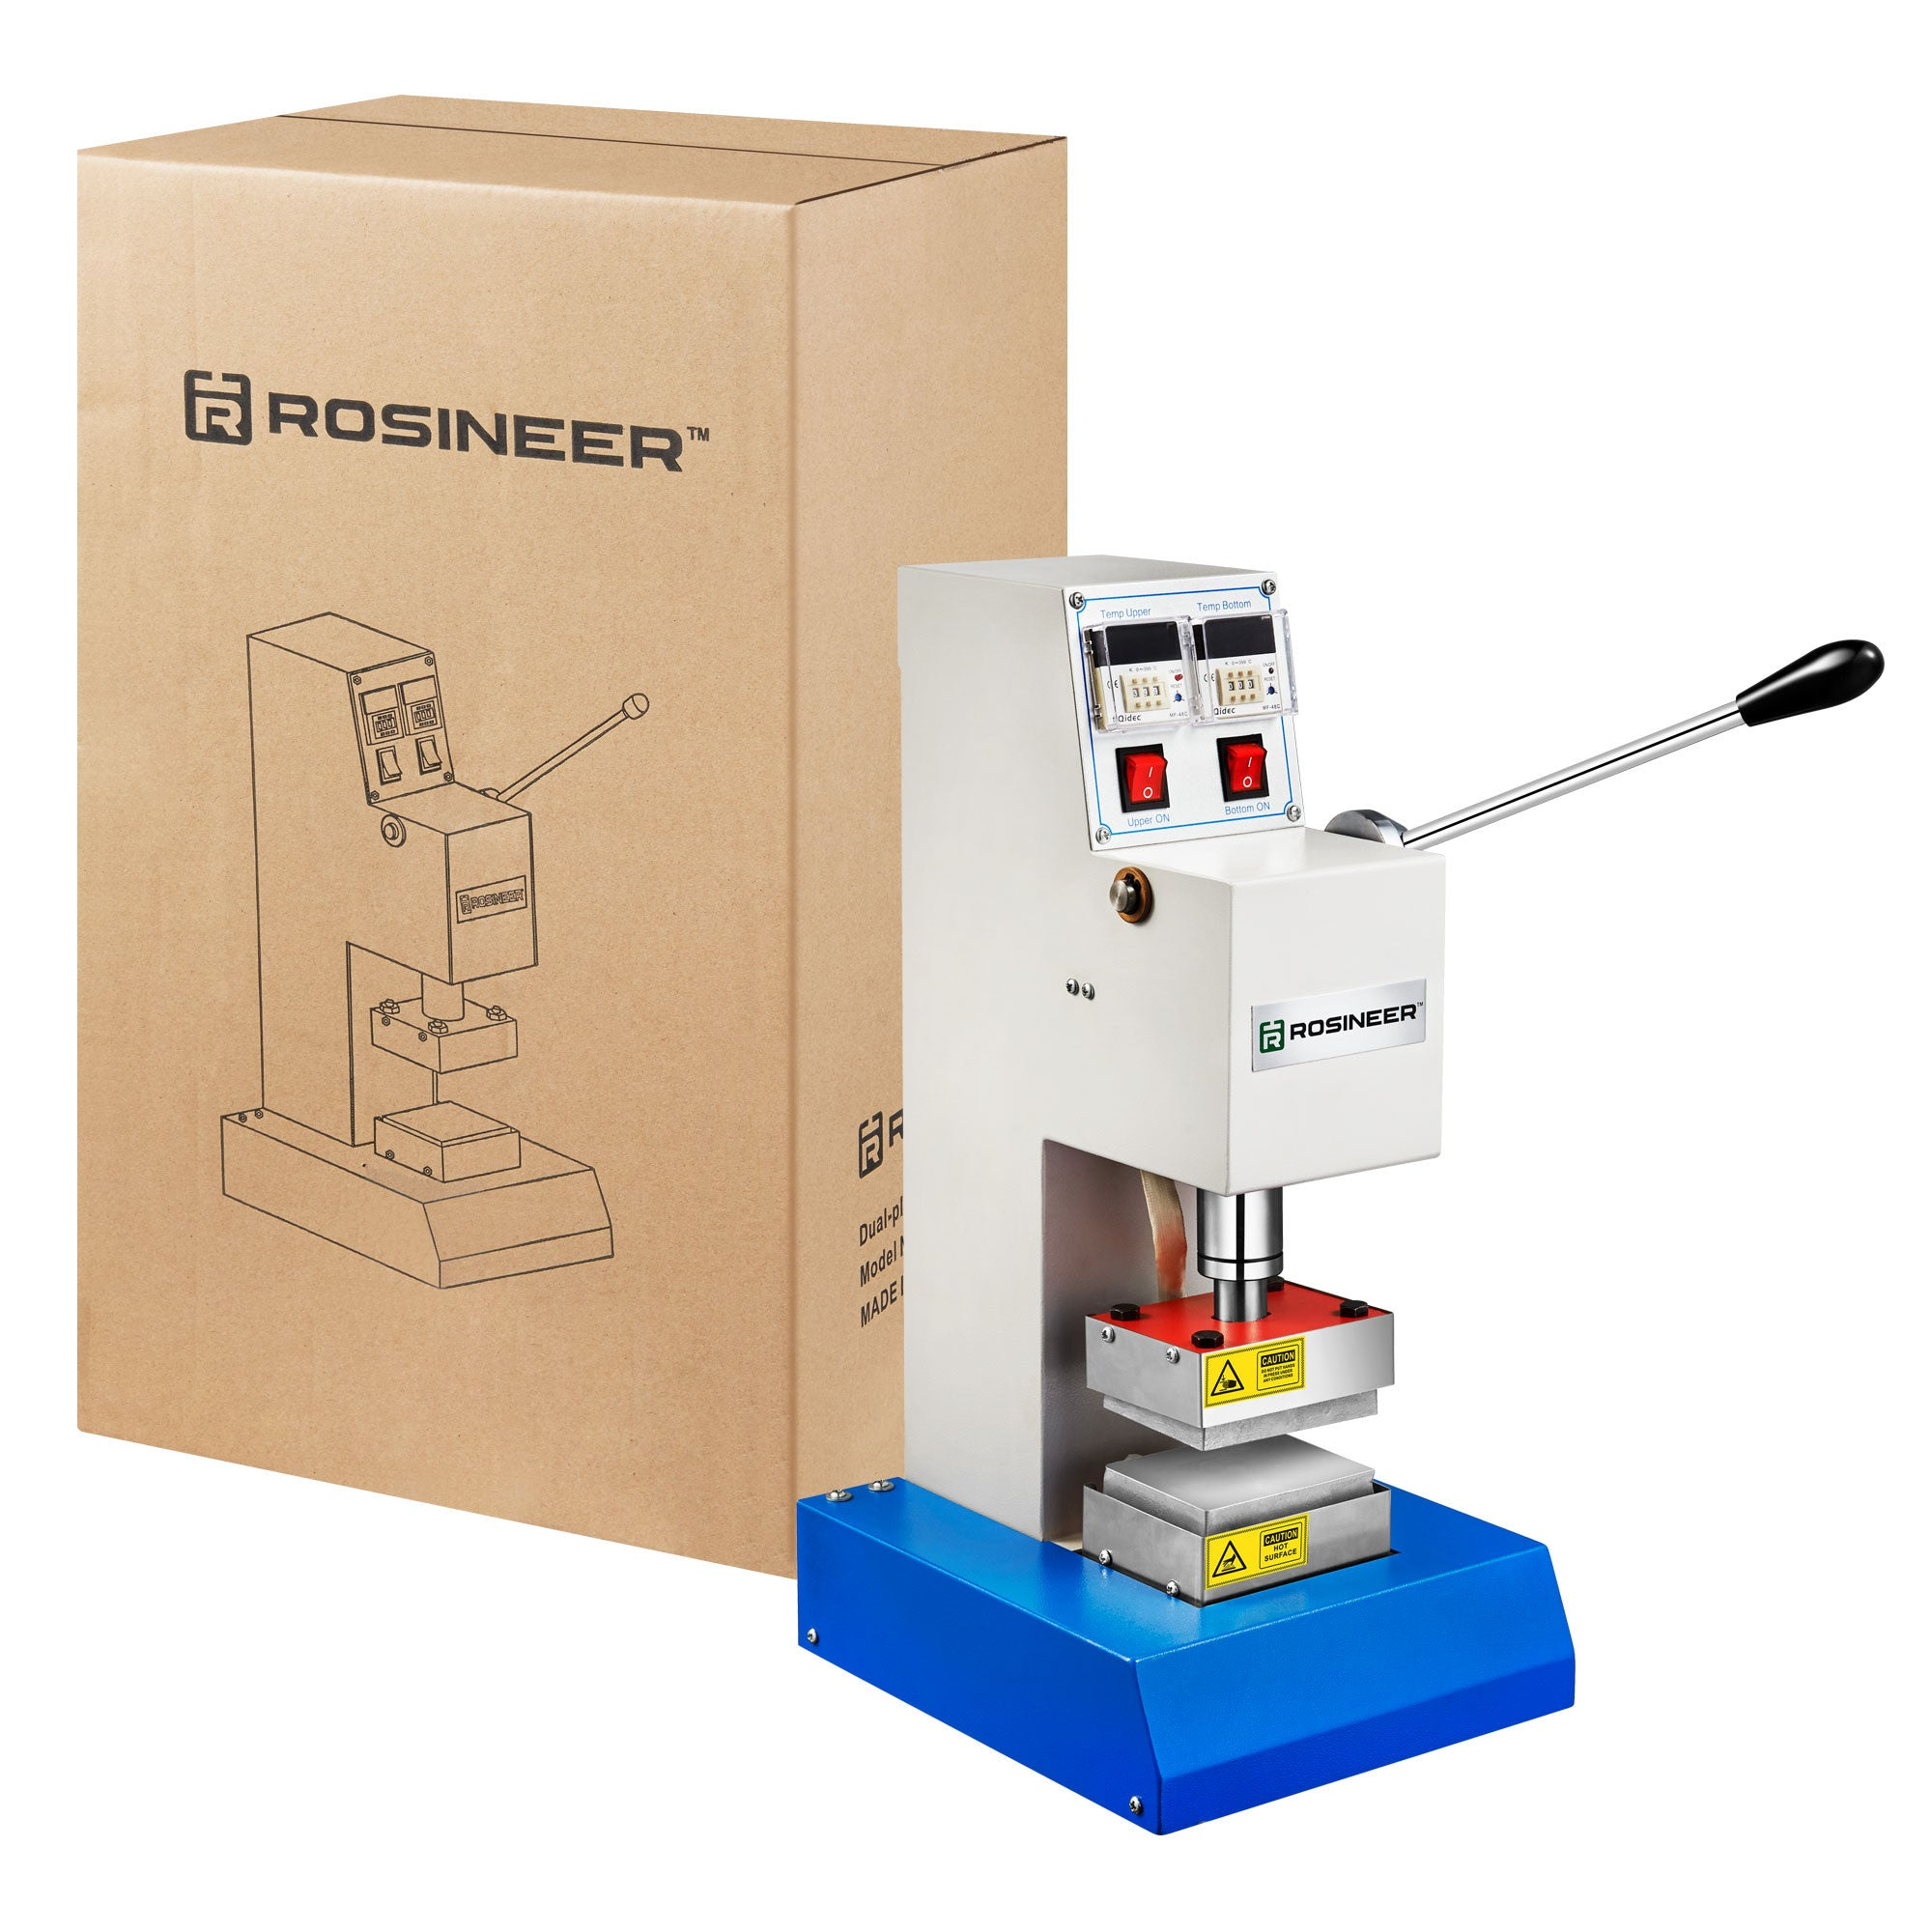 Rosineer RNR-MV1 Manual Rosin Press - Packaging